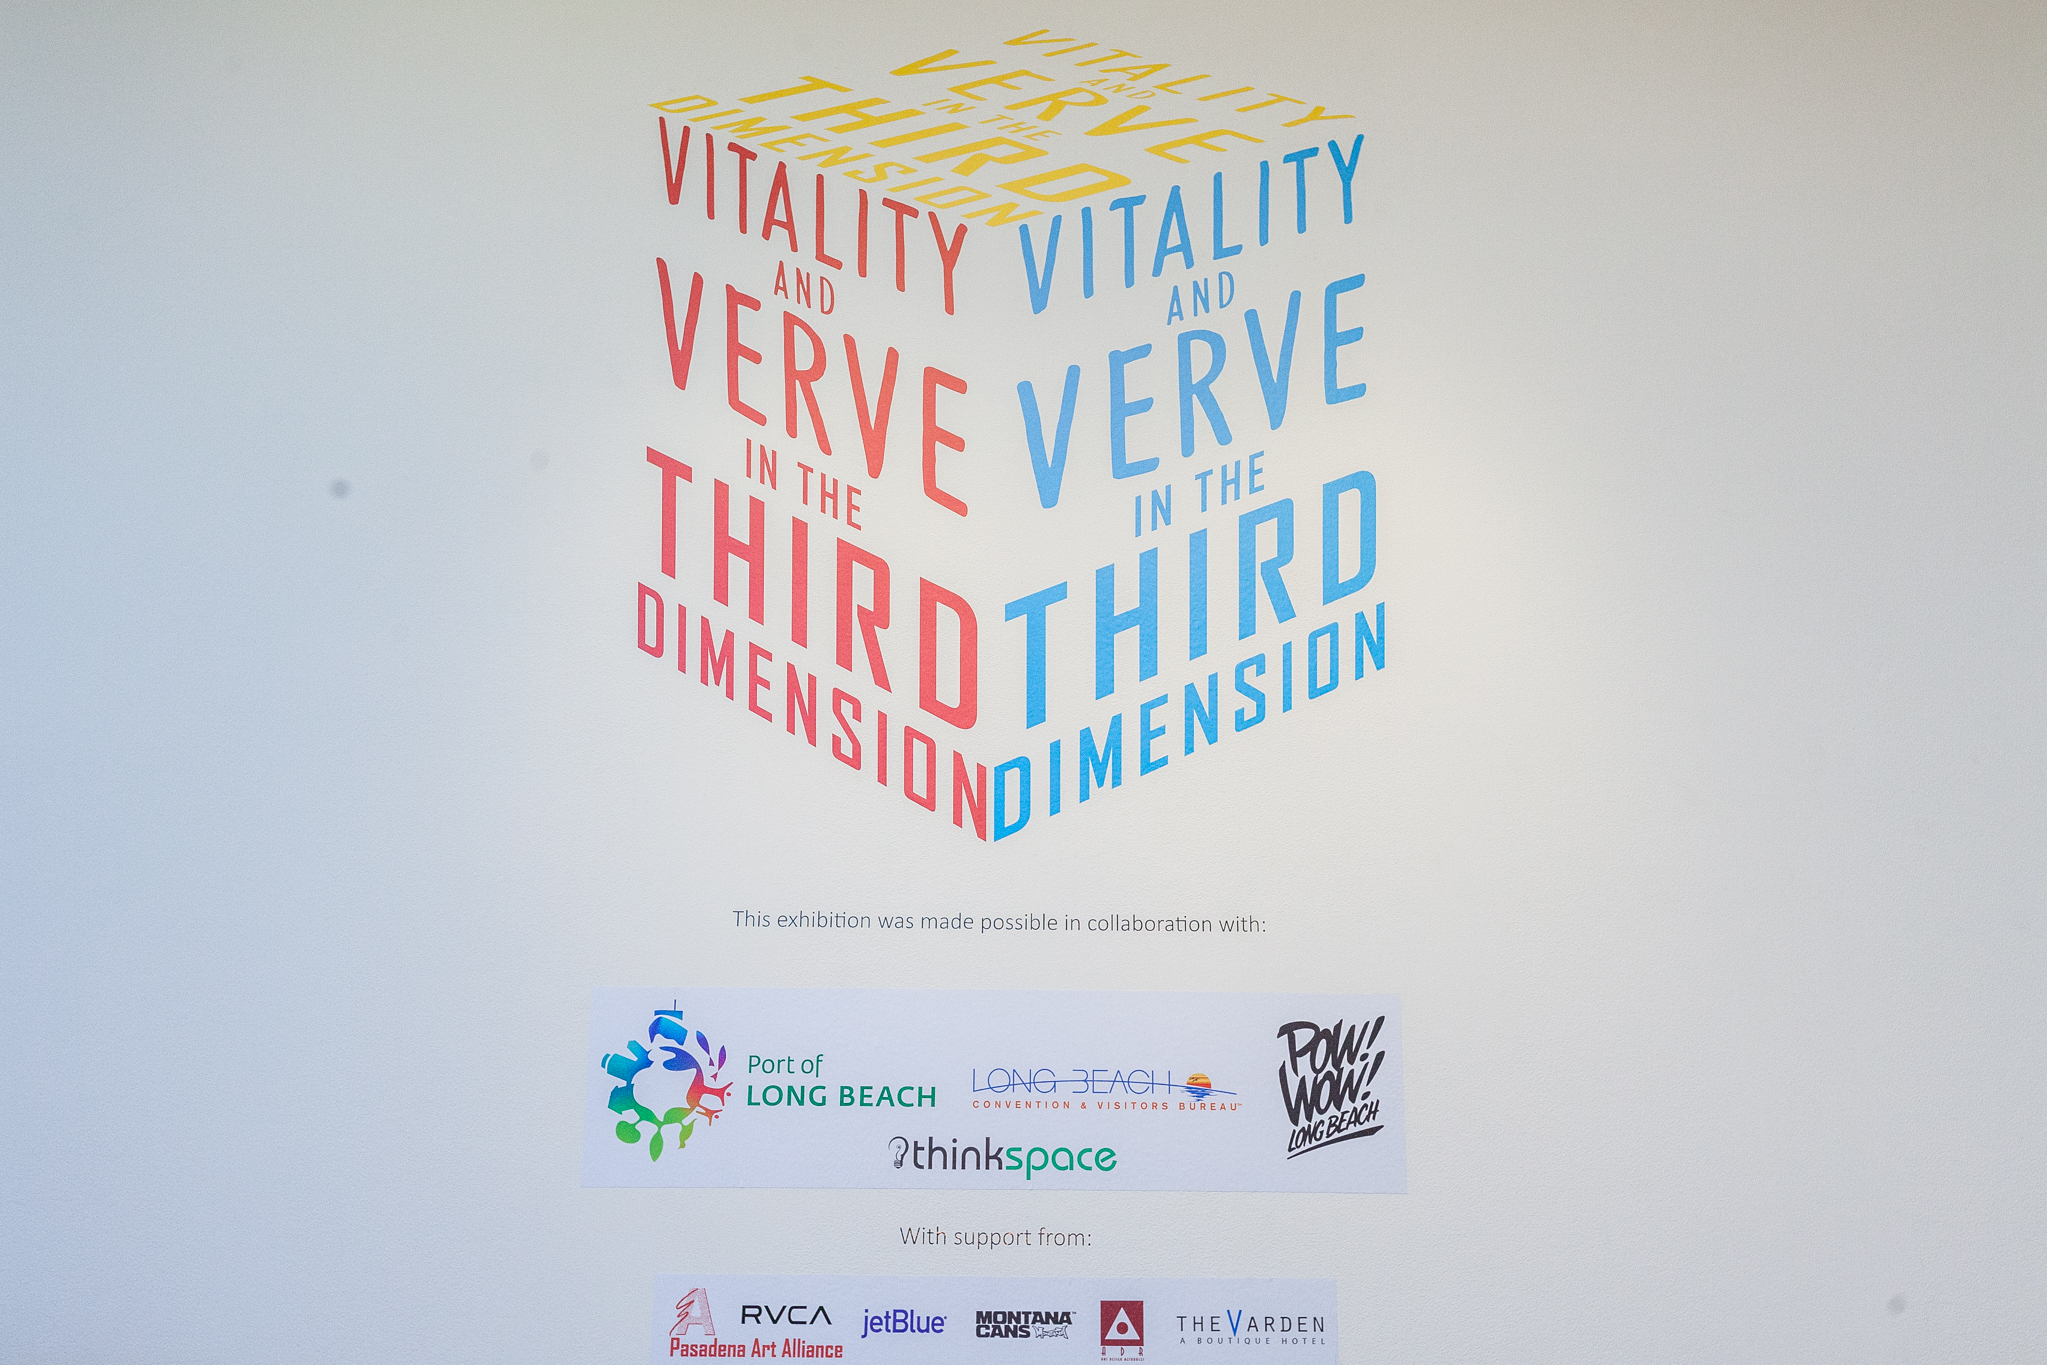 LBMA Vitality and Verve In The Third Dimension